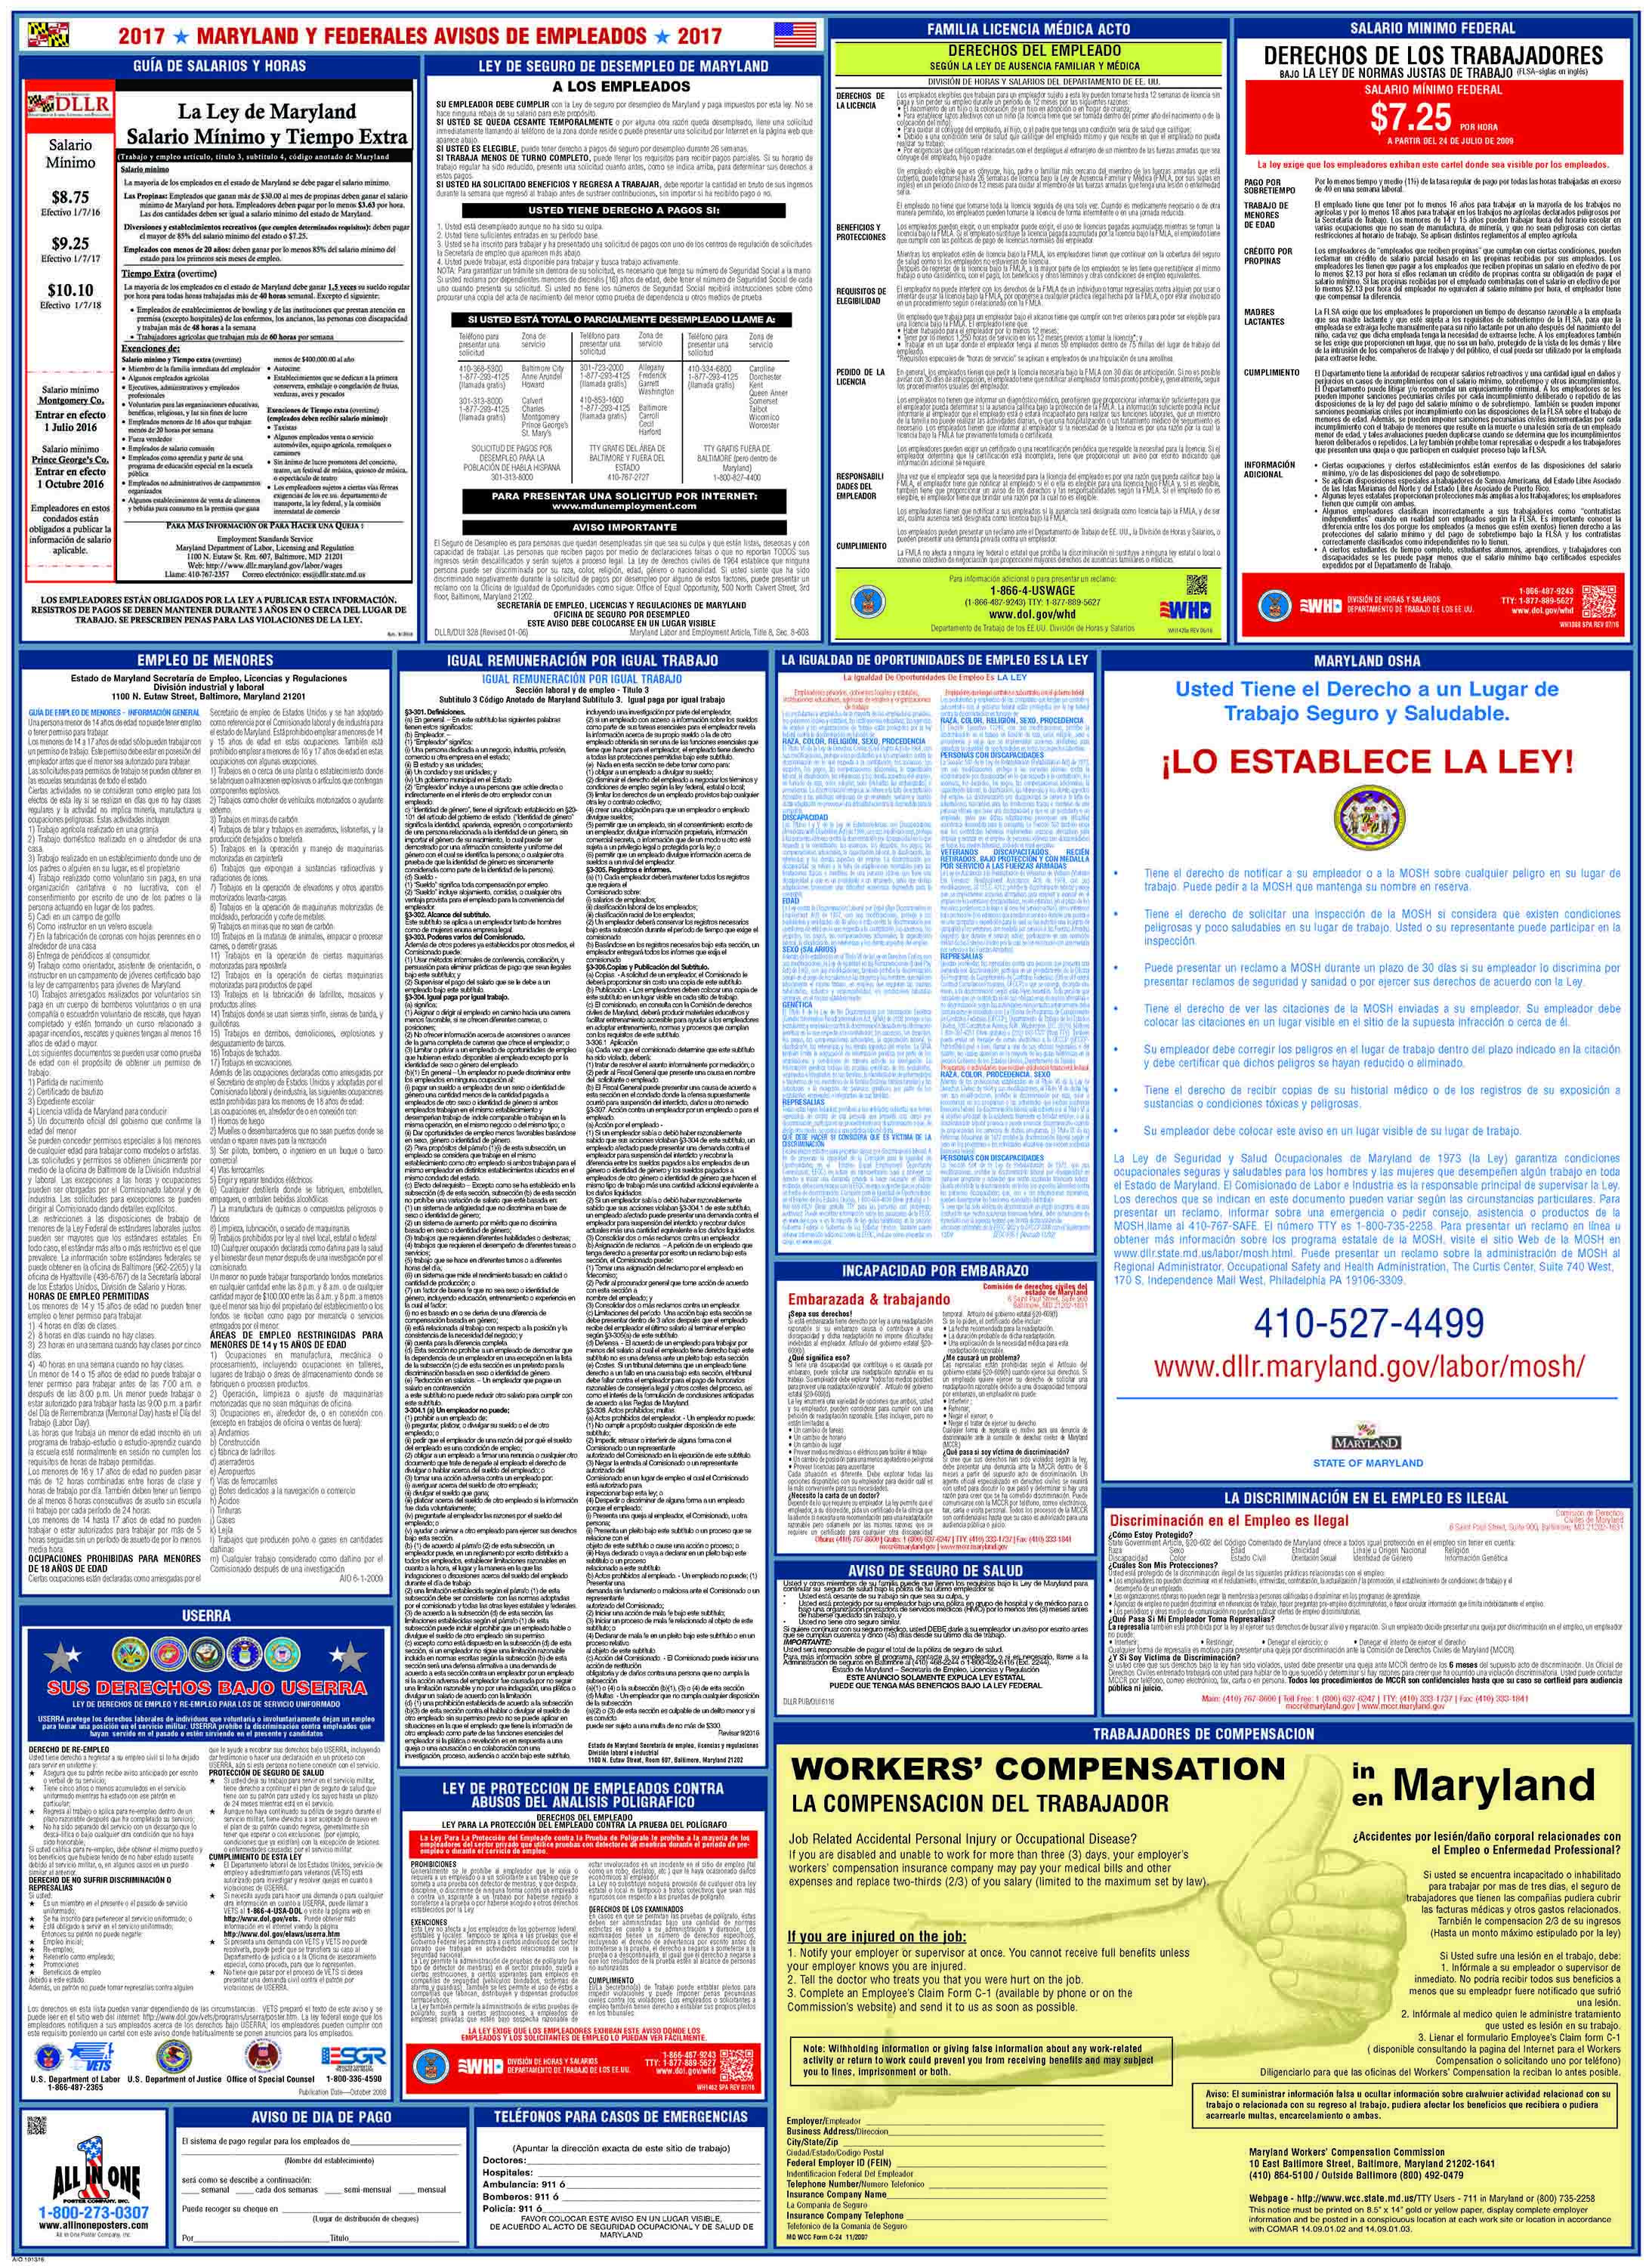 Federal labor law posters all in one free